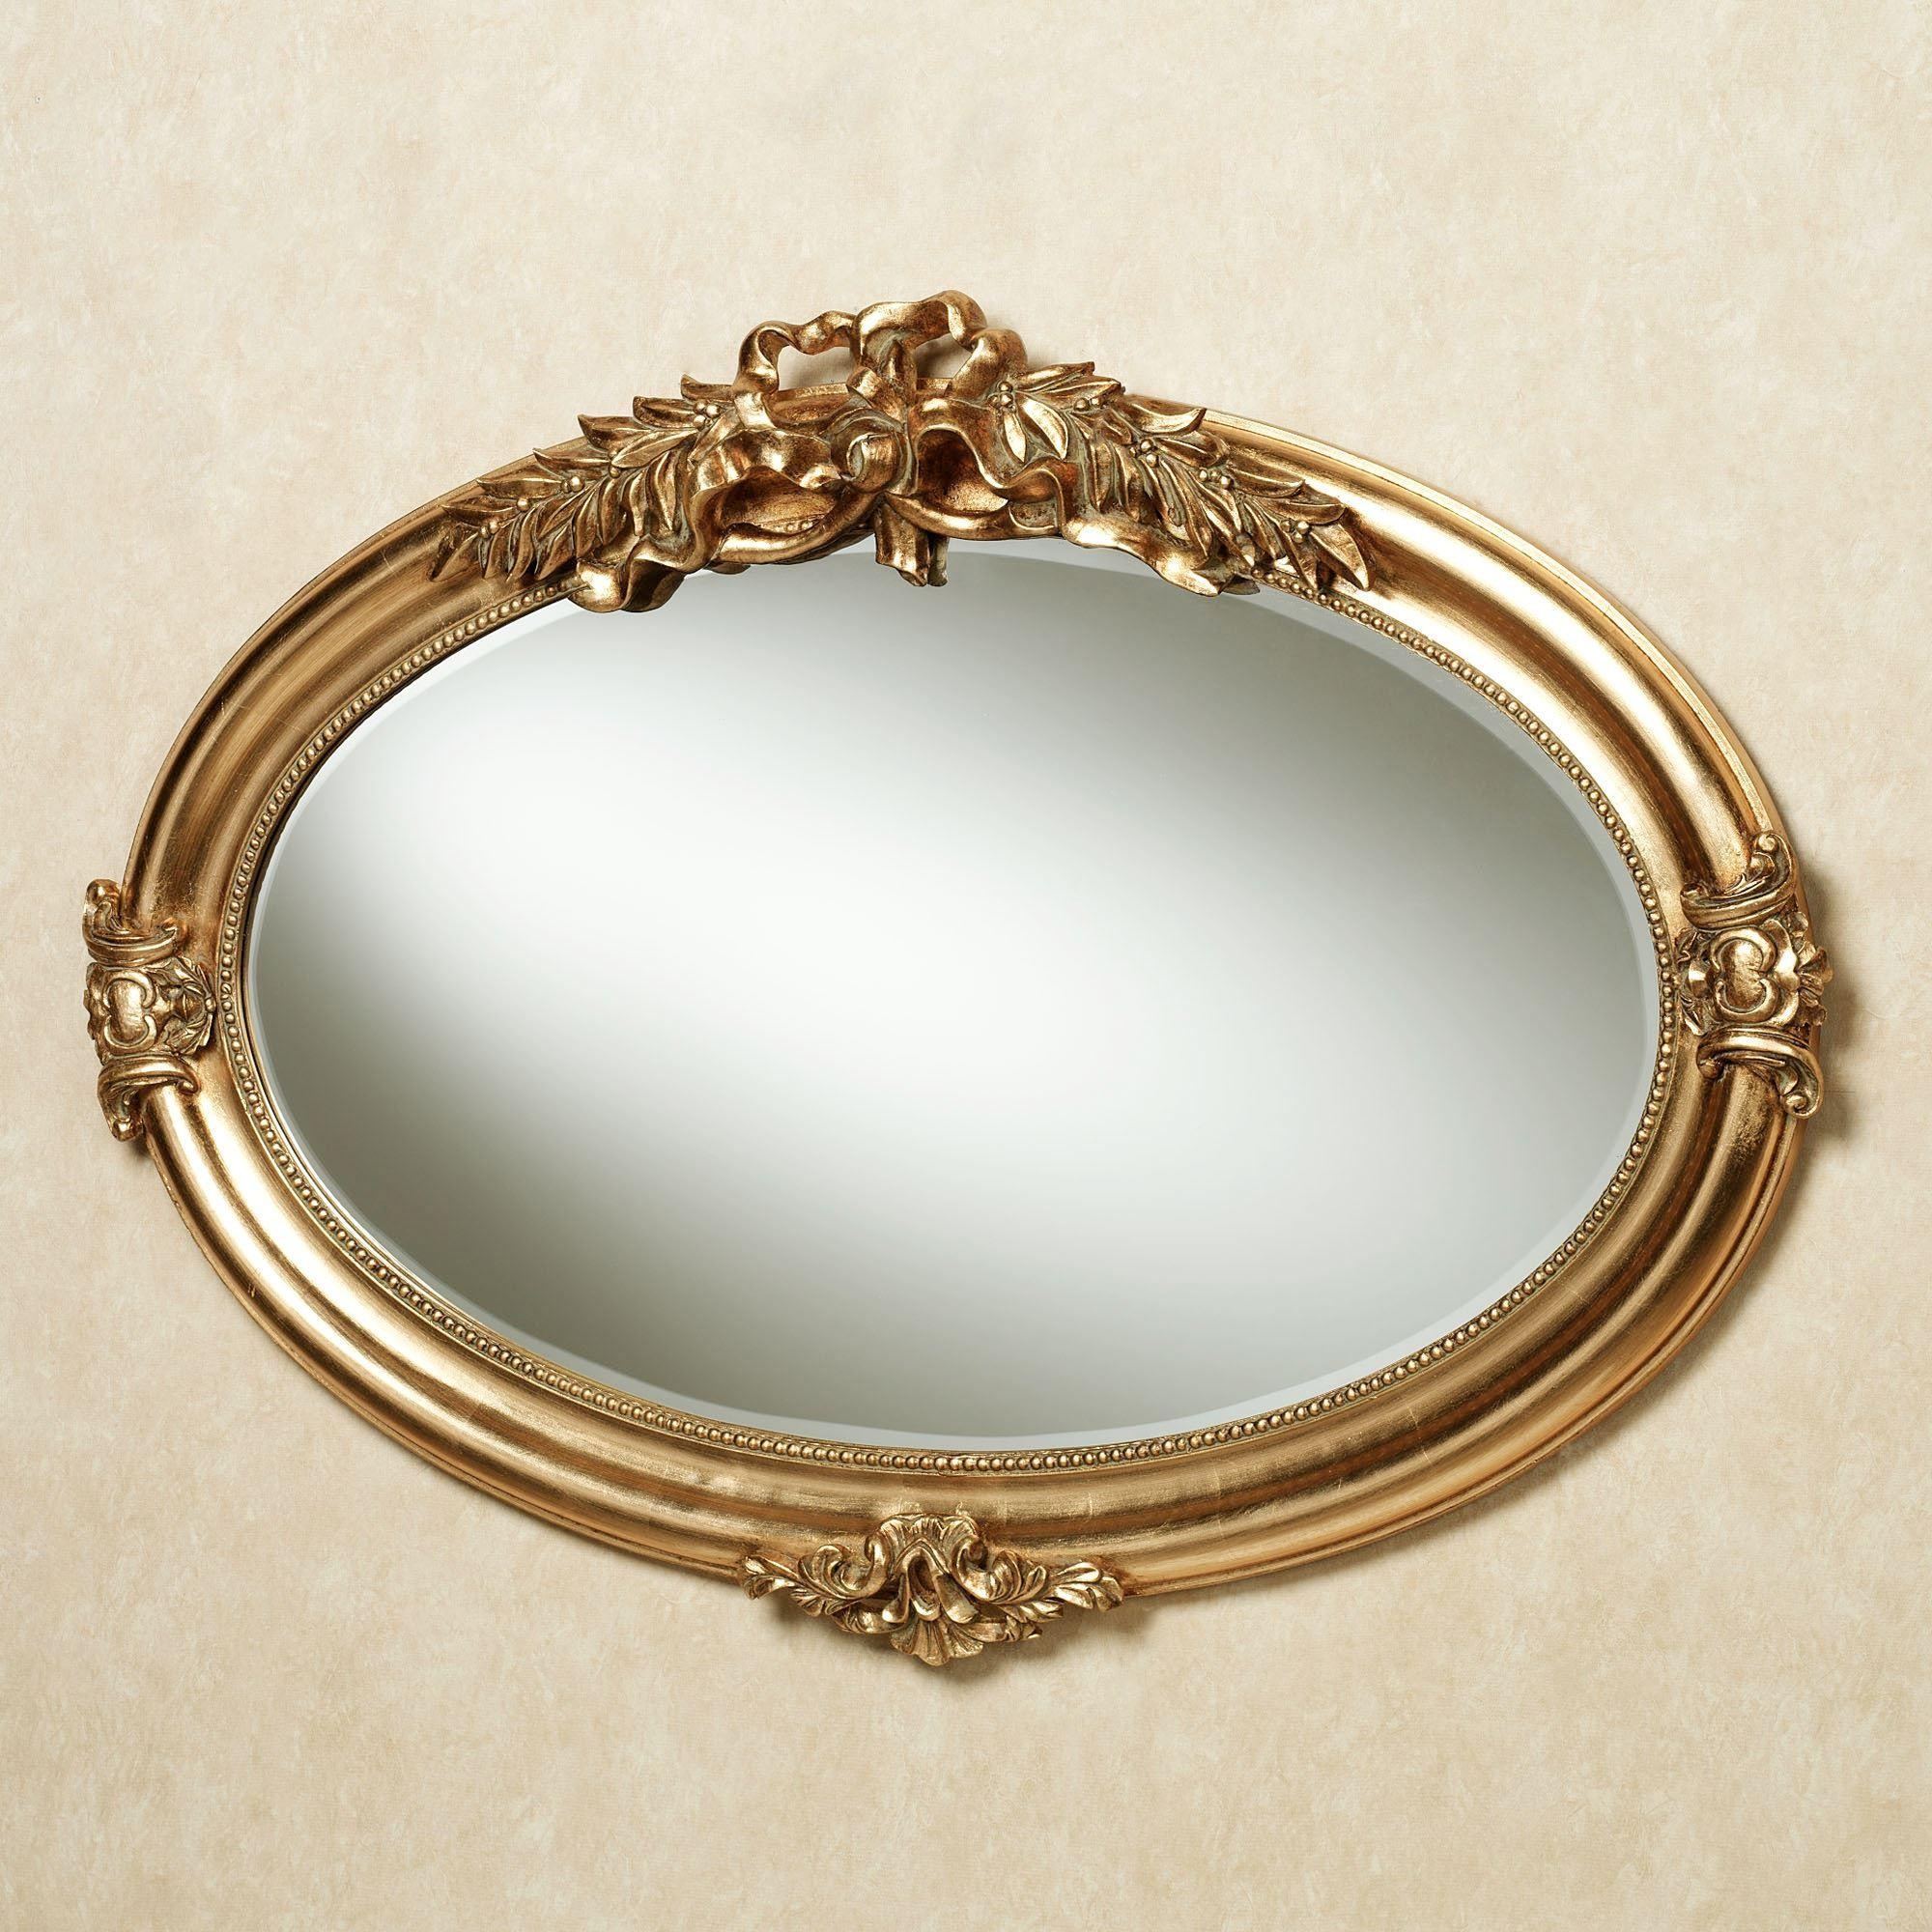 Marsciano Horizontal Oval Wall Mirror Pertaining To Gold Wall Mirrors (Image 12 of 20)